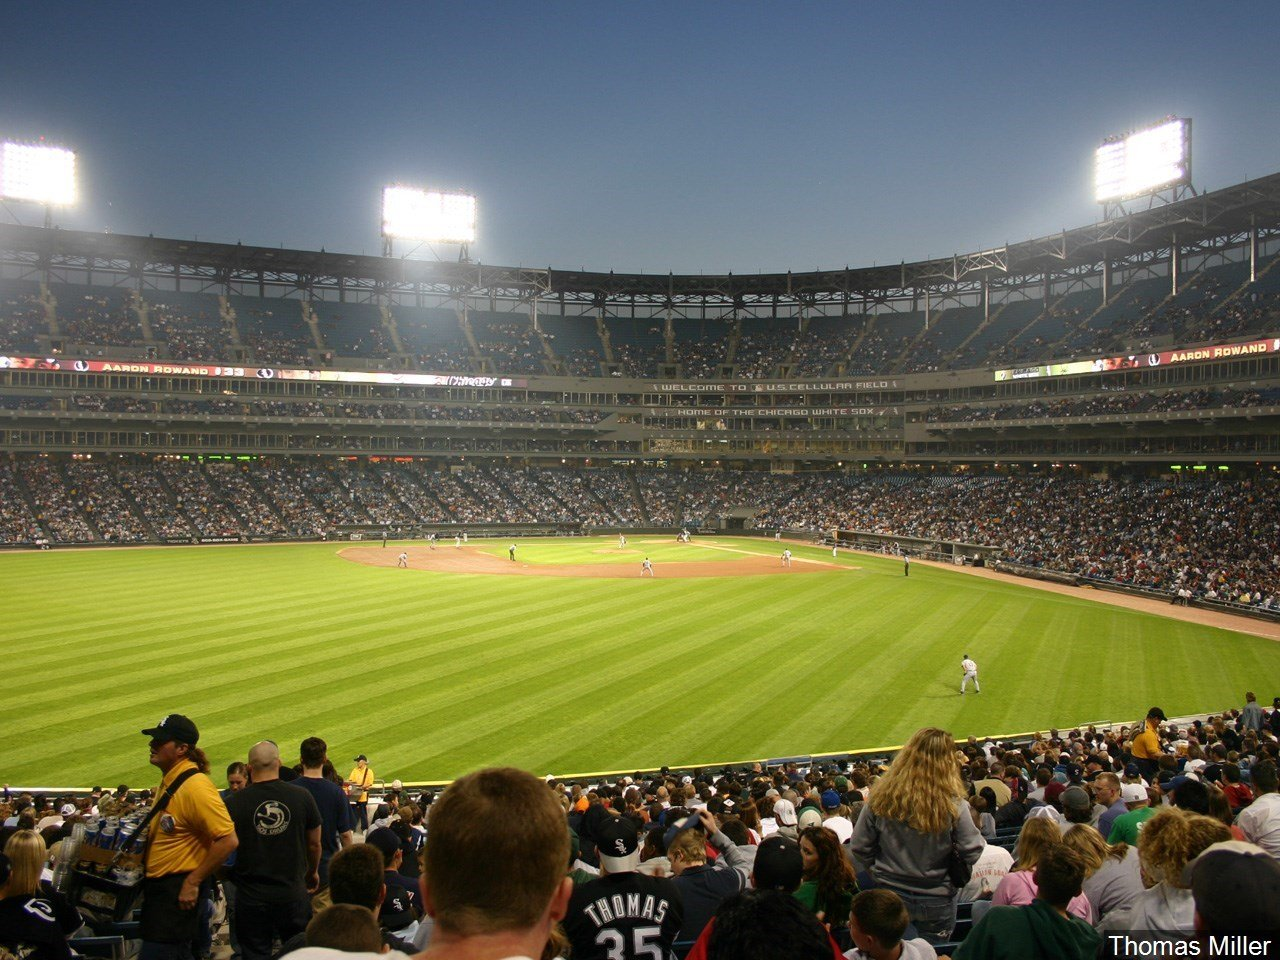 Chicago White Sox Guaranteed Rate Field / MGN Online